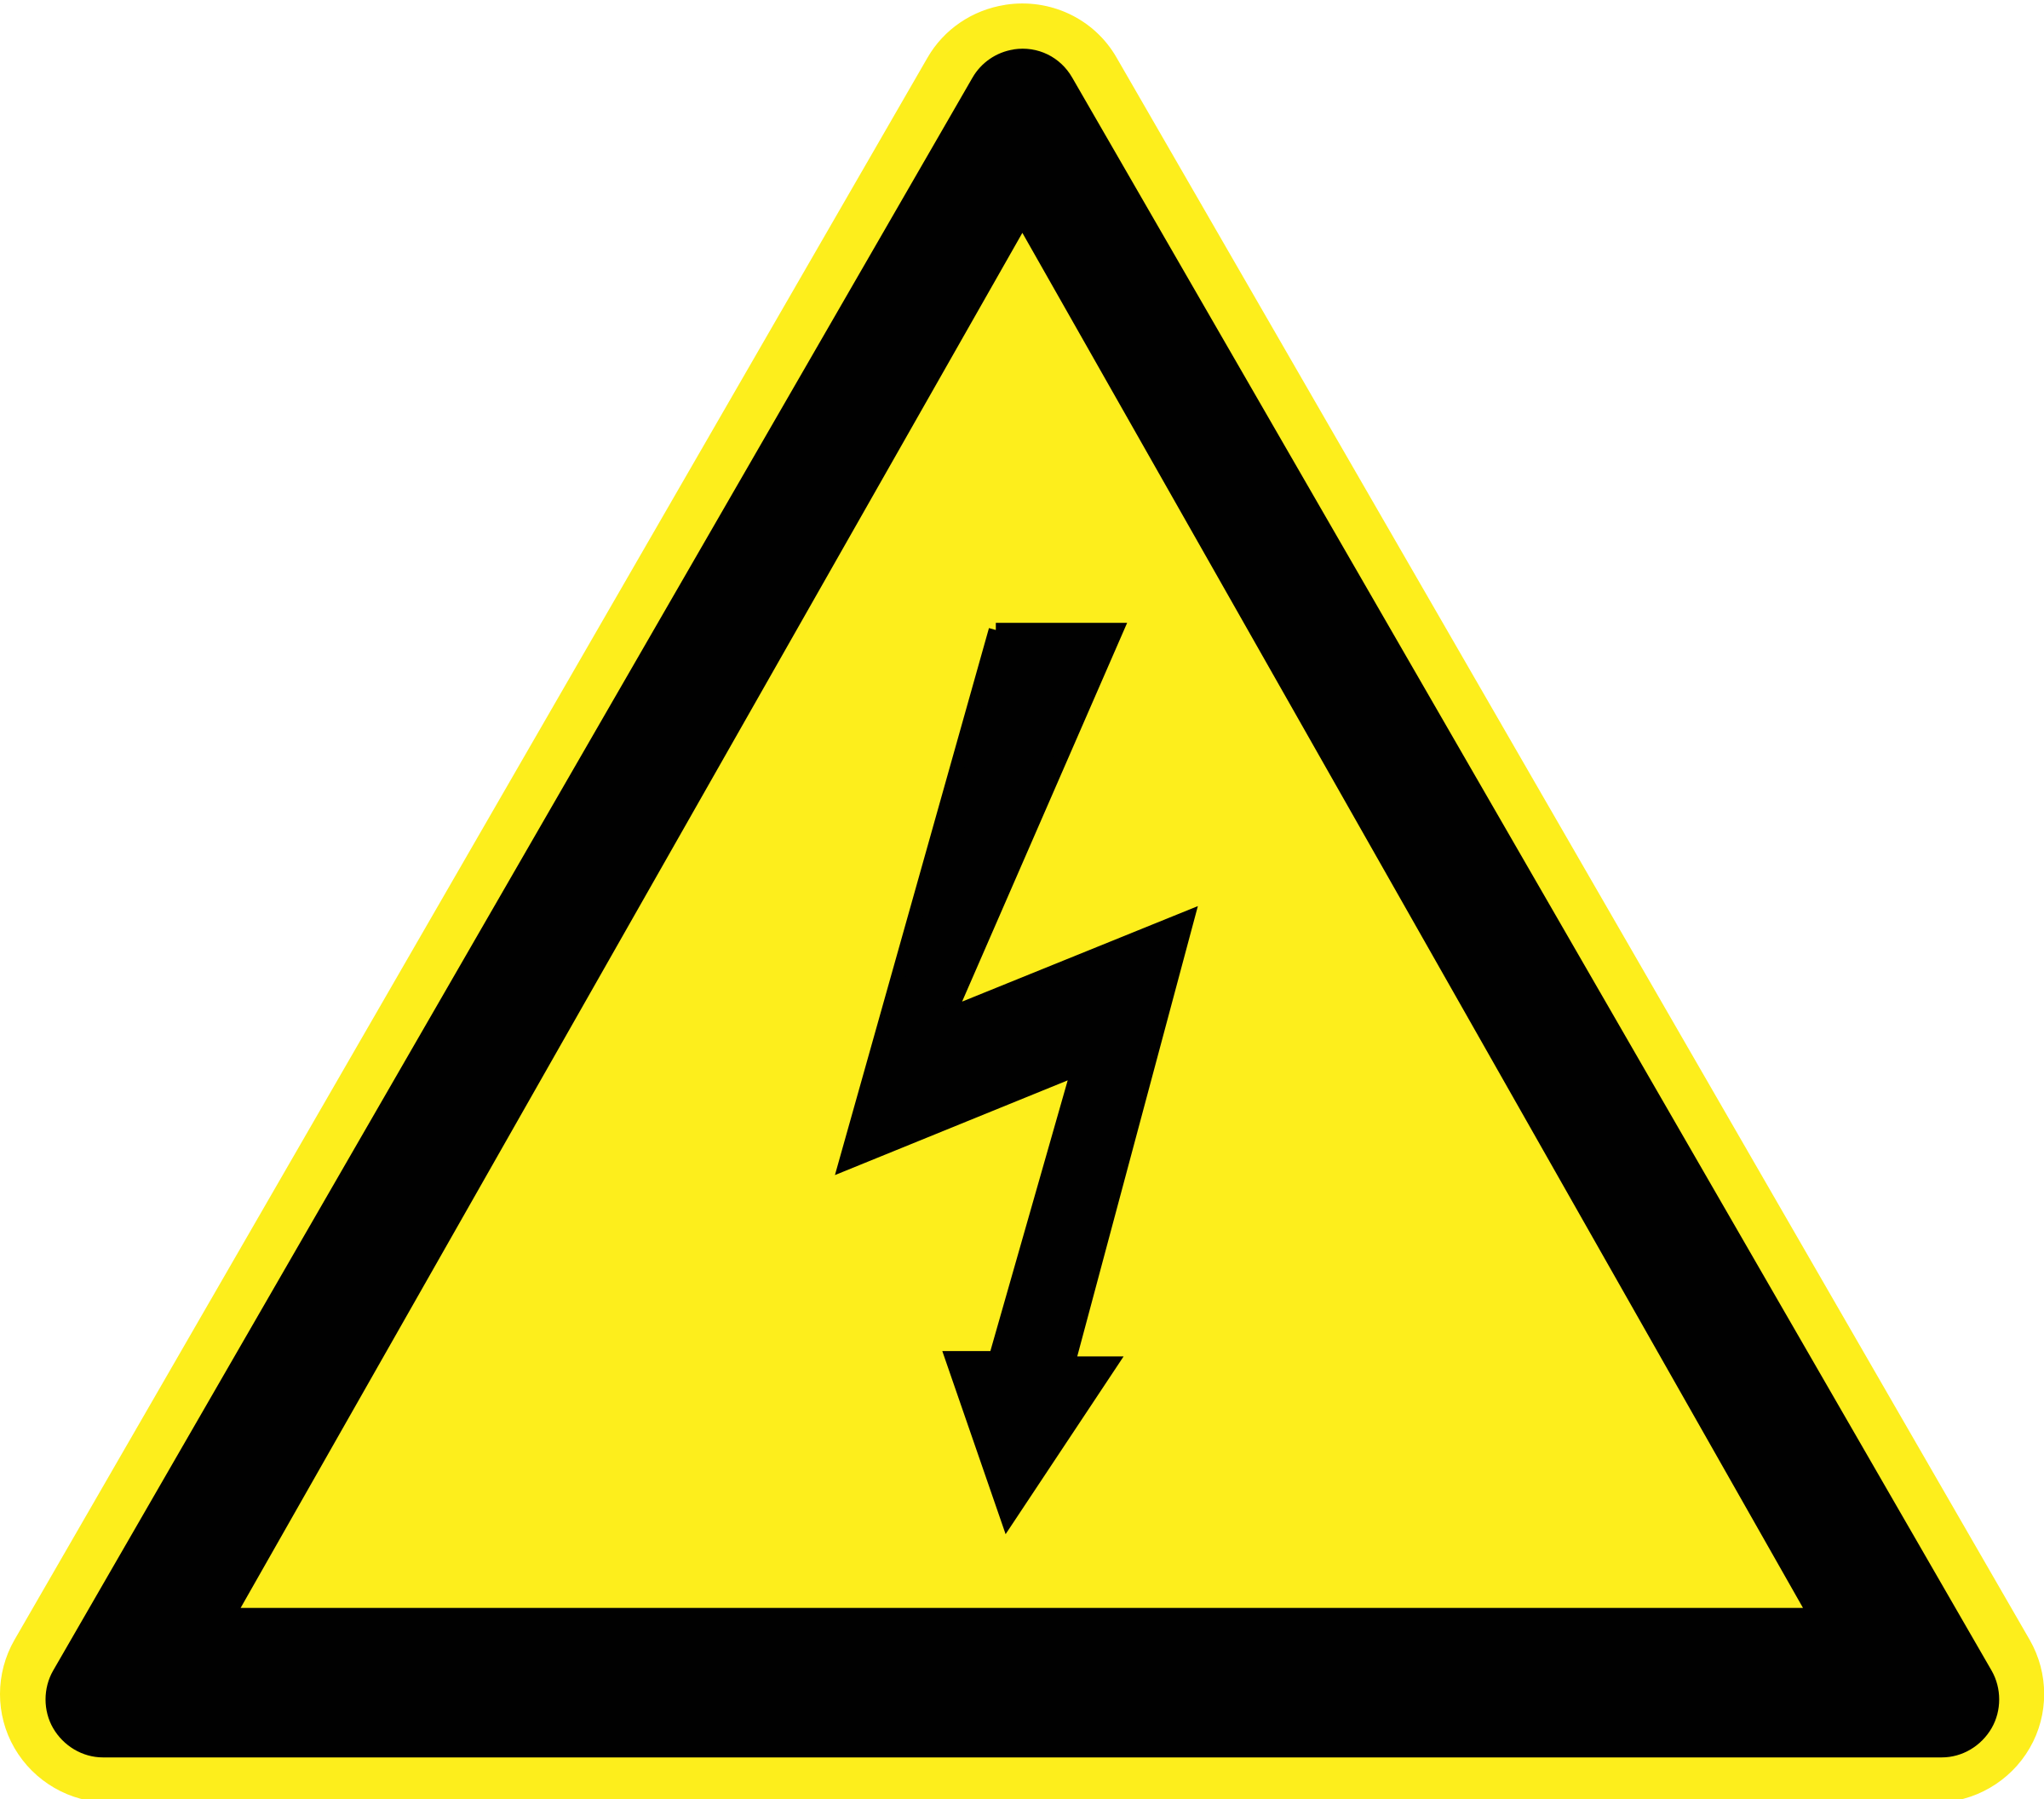 Electricity clipart be careful with. Word free on dumielauxepices